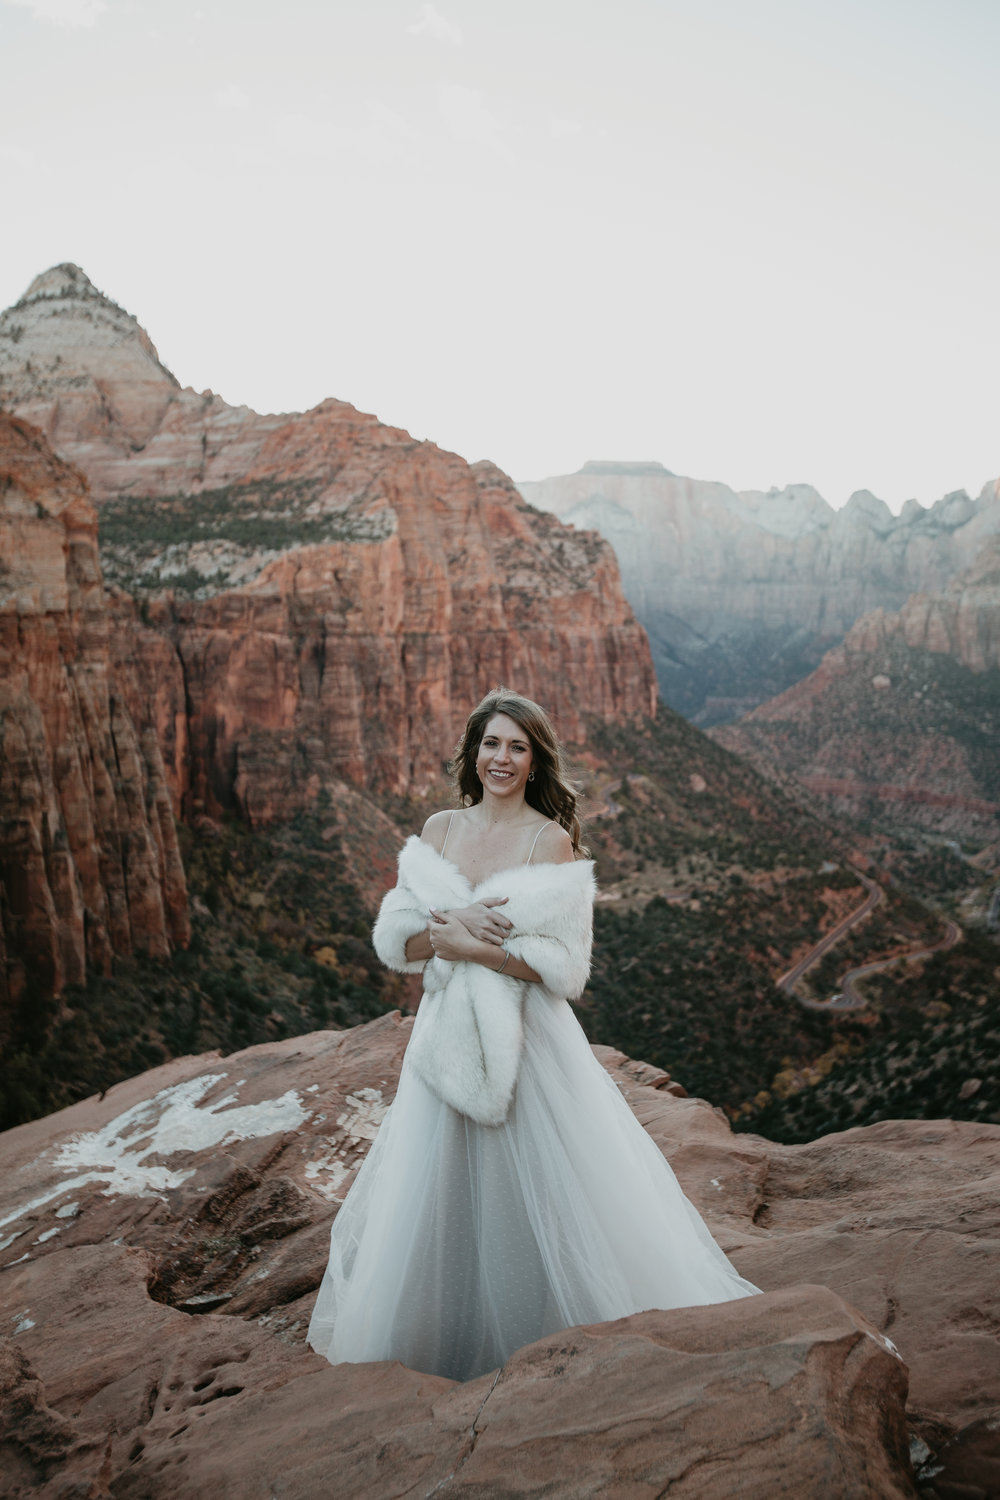 nicole-daacke-photography-zion-national-park-elopement-photographer-canyon-overlook-trail-elope-hiking-adventure-wedding-photos-fall-utah-red-rock-canyon-stgeorge-eloping-photographer-63.jpg